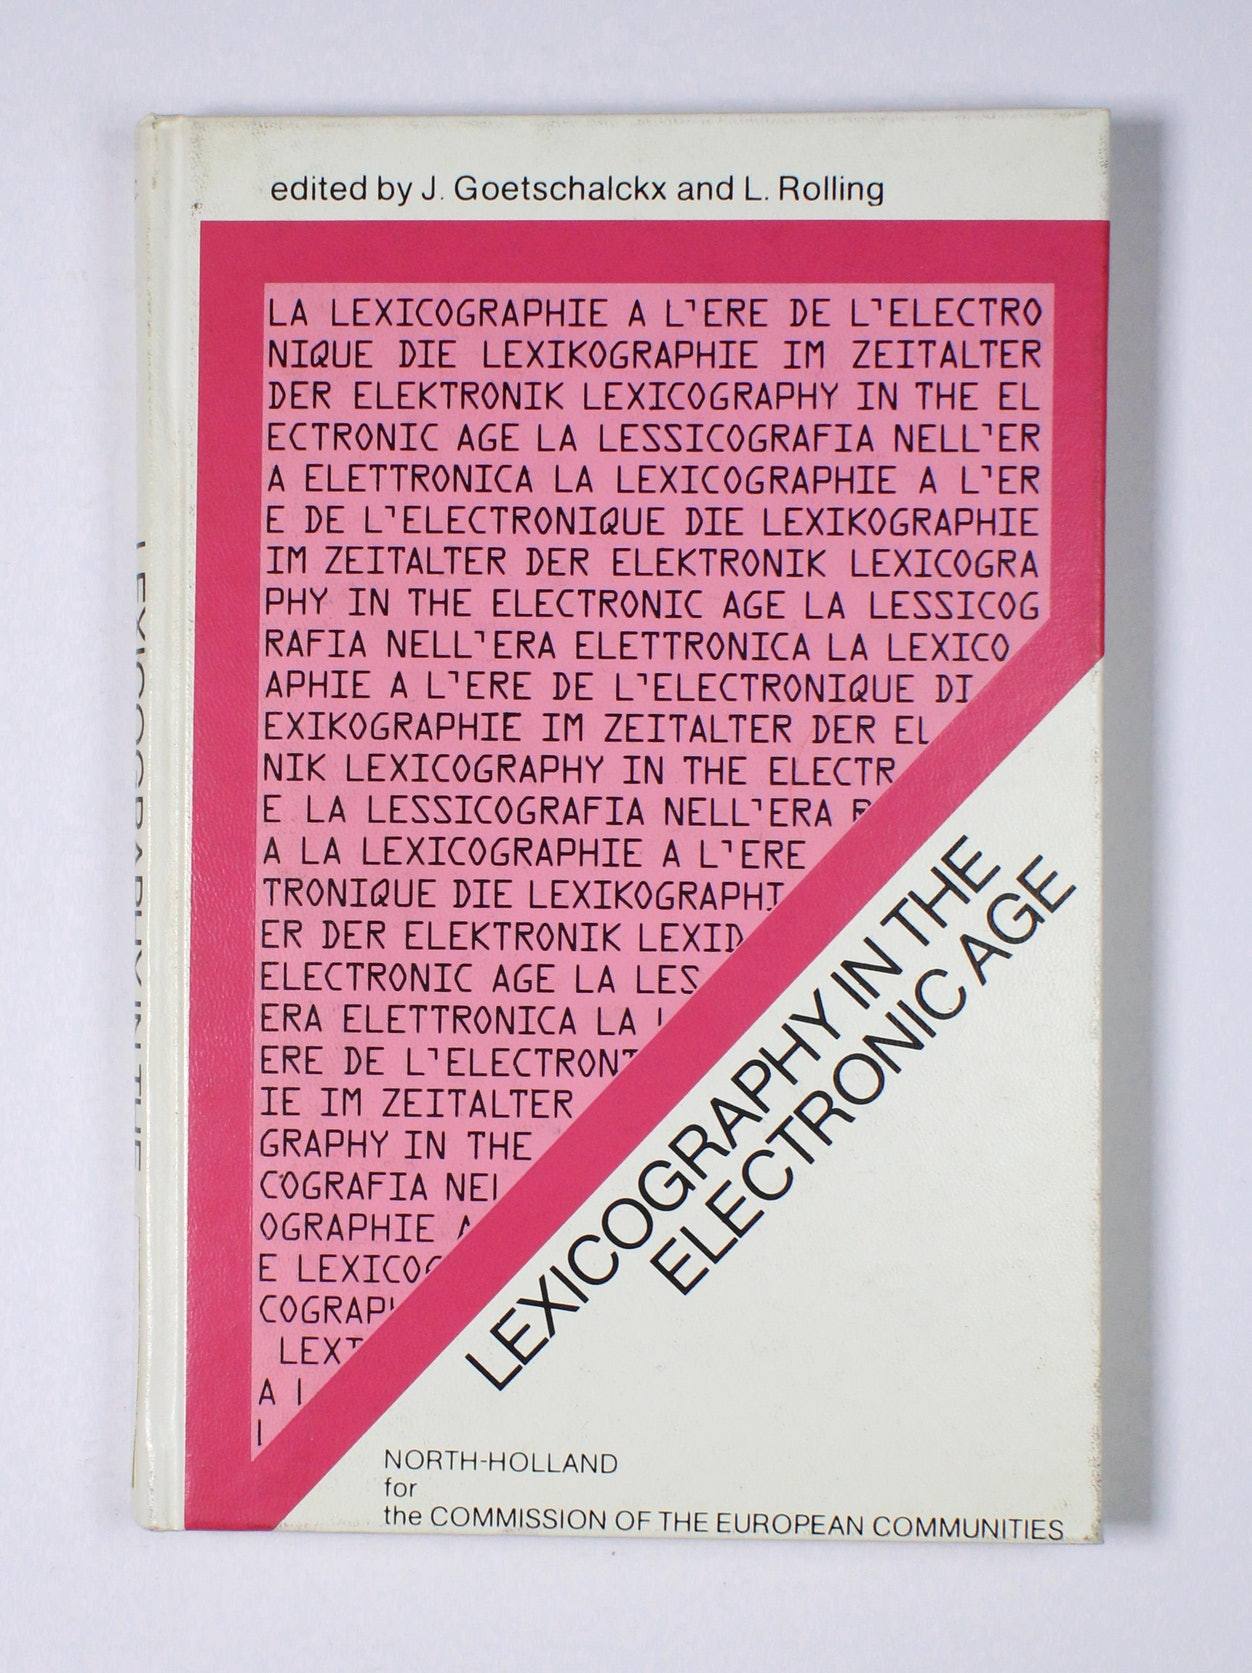 Lexicography in the Electronic Age